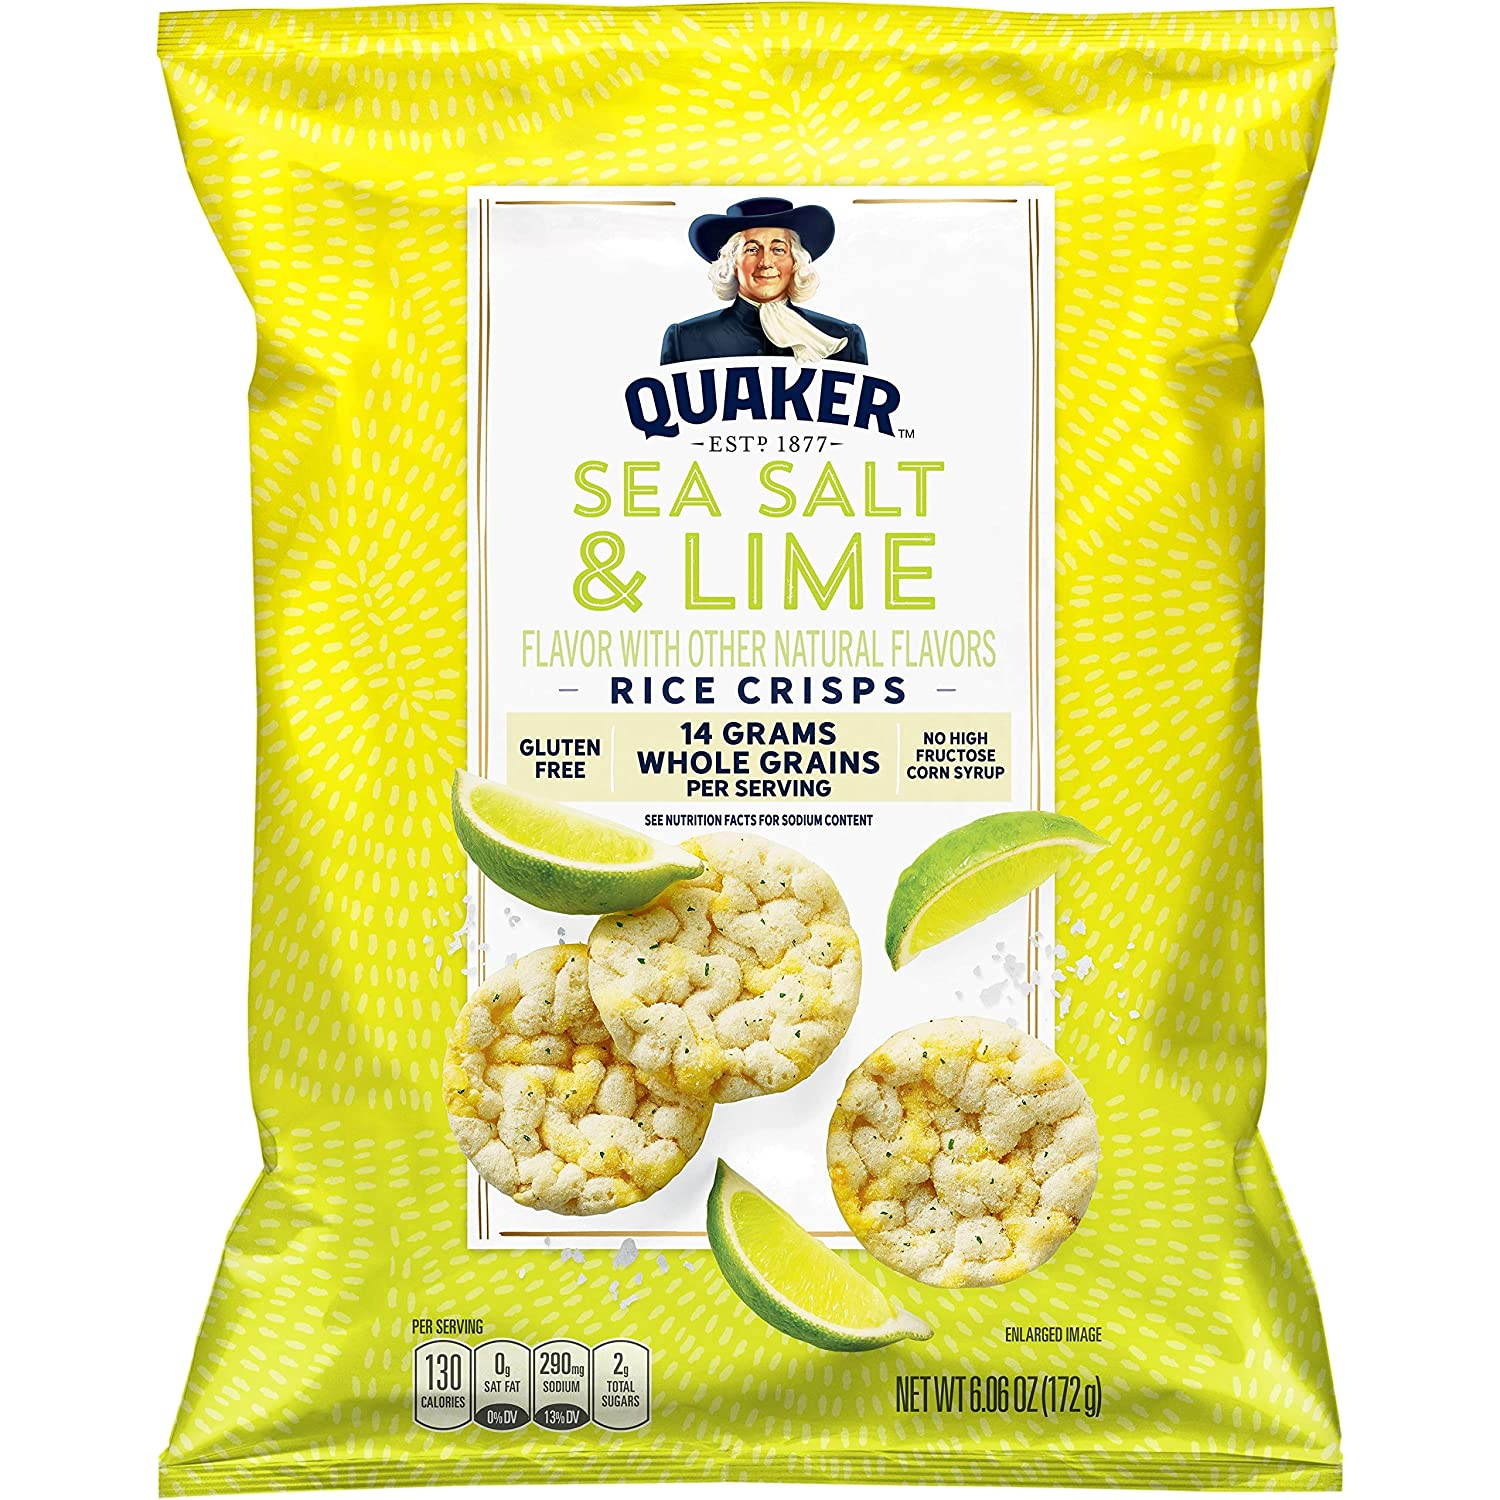 Quaker Rice Crisps, Sea Salt & Lime, 6.06 oz Bag (Packaging May Vary)